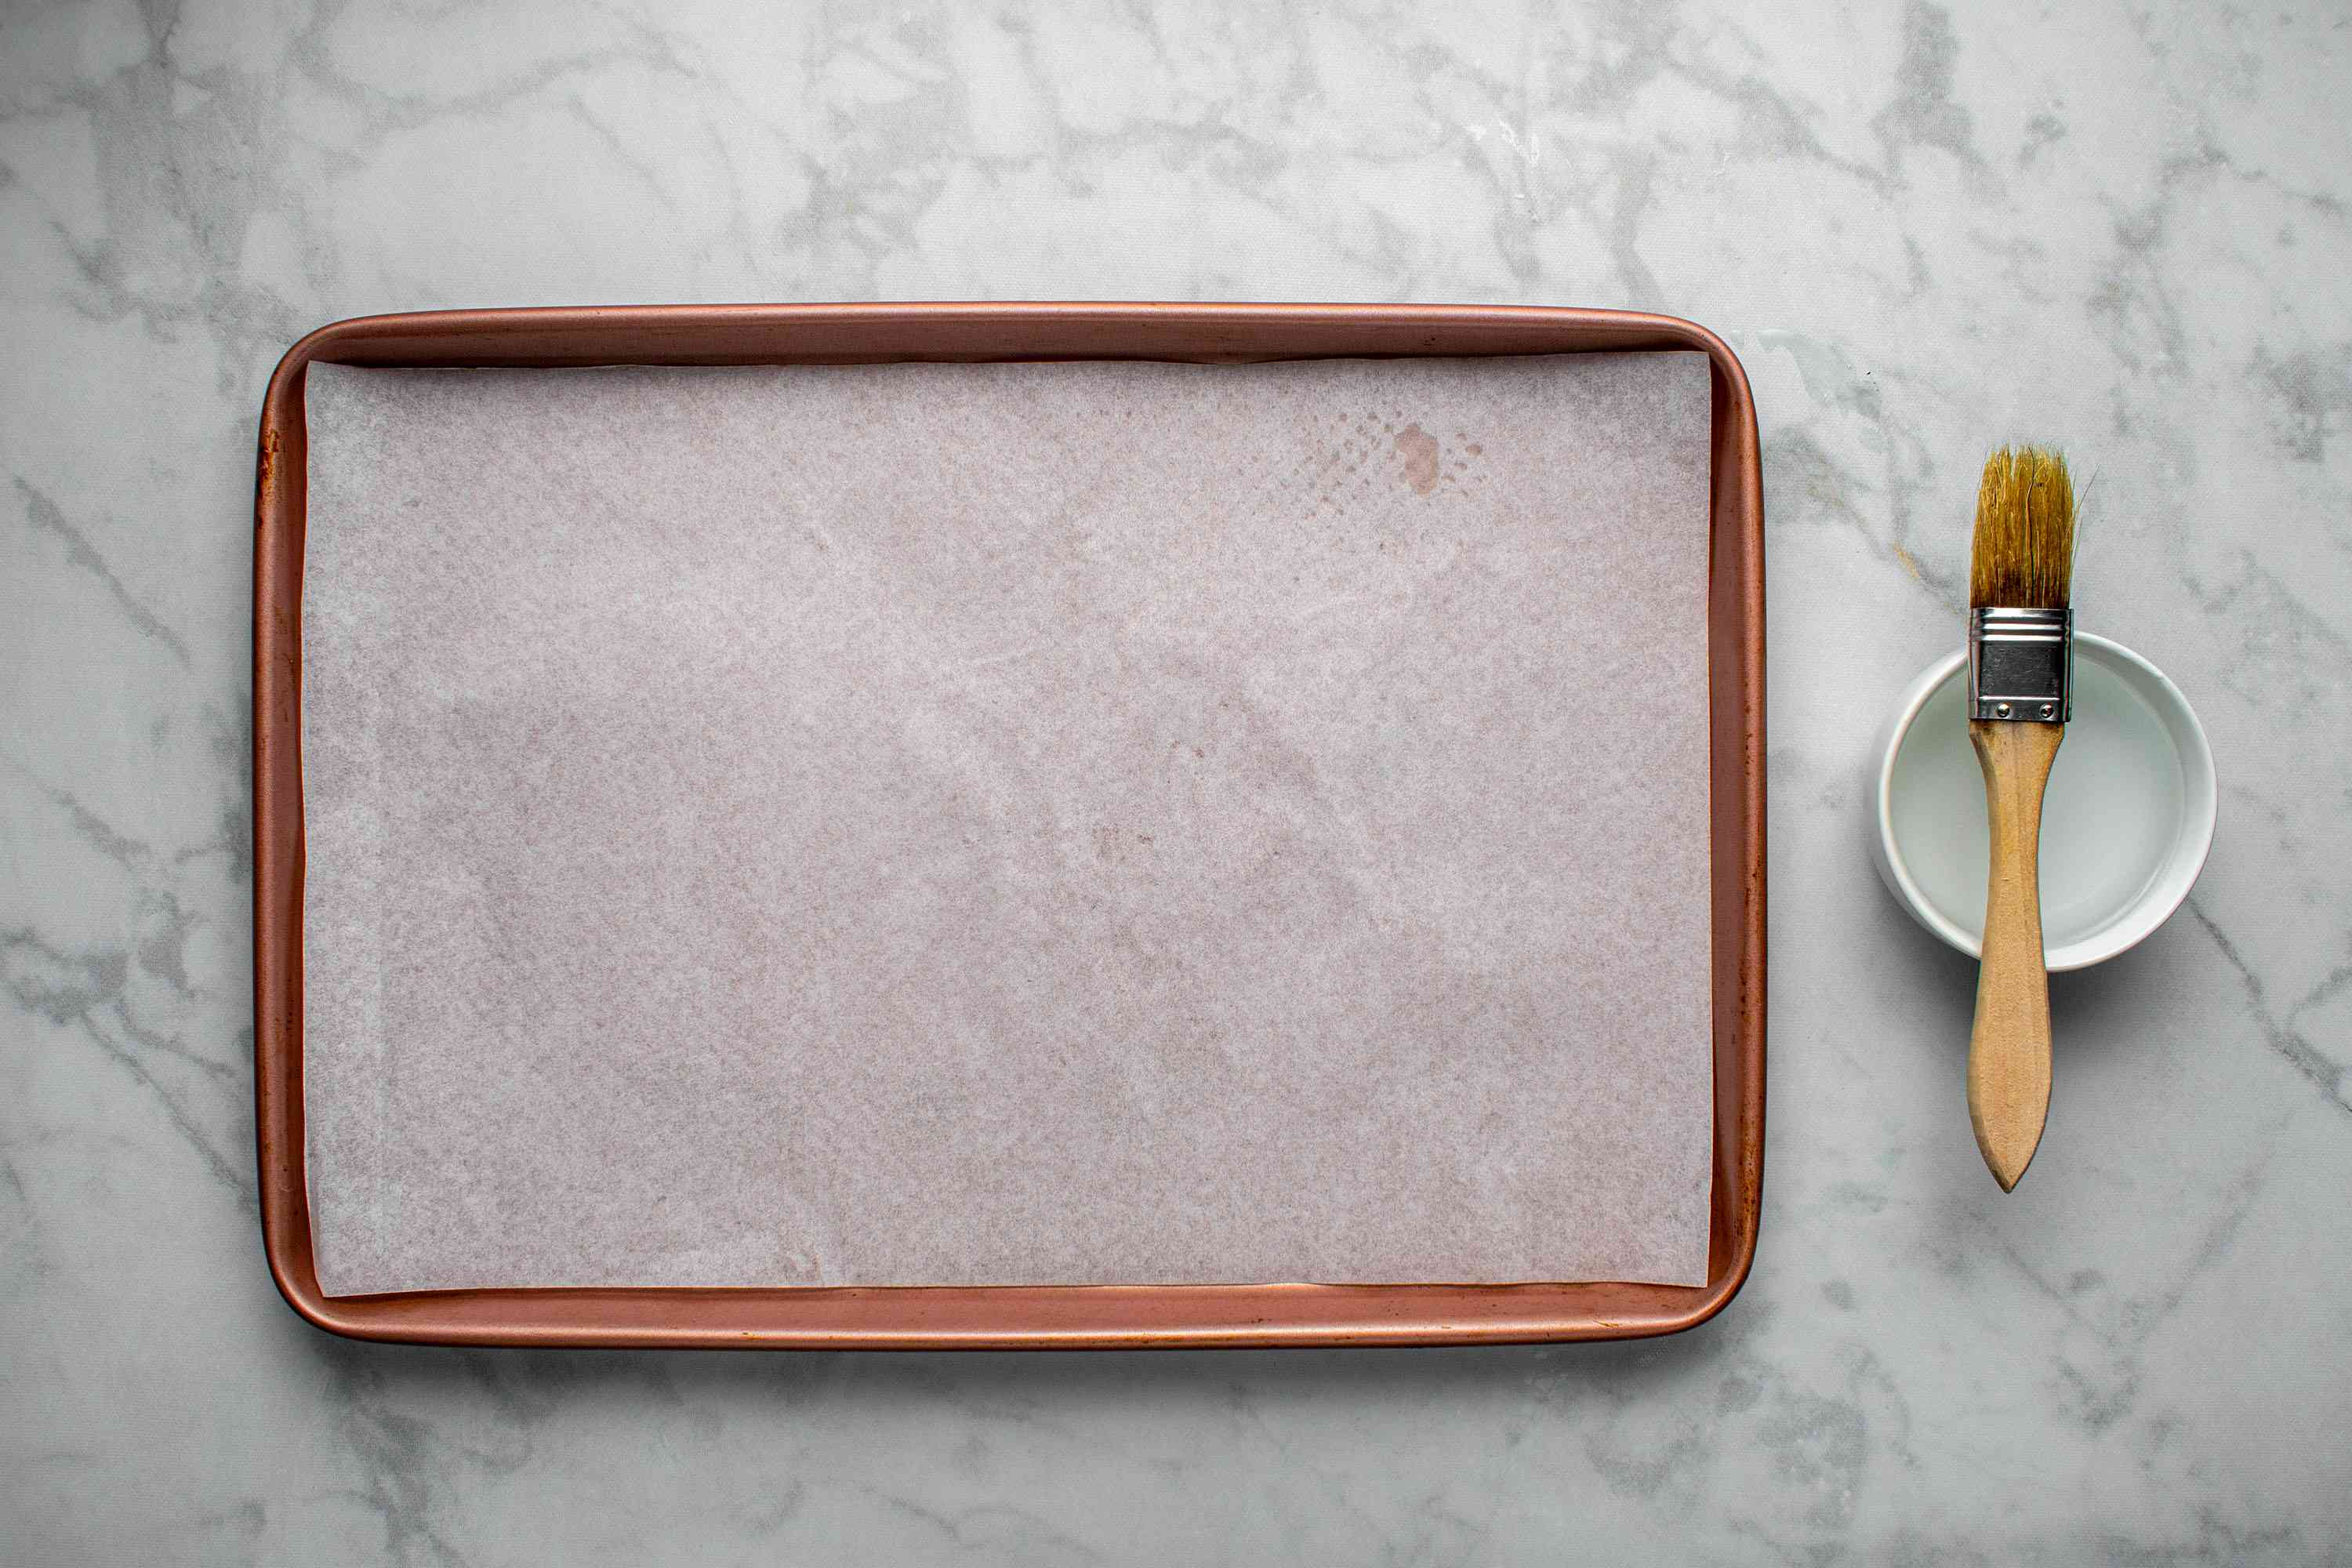 parchment paper lined baking sheet, bowl with water and brush